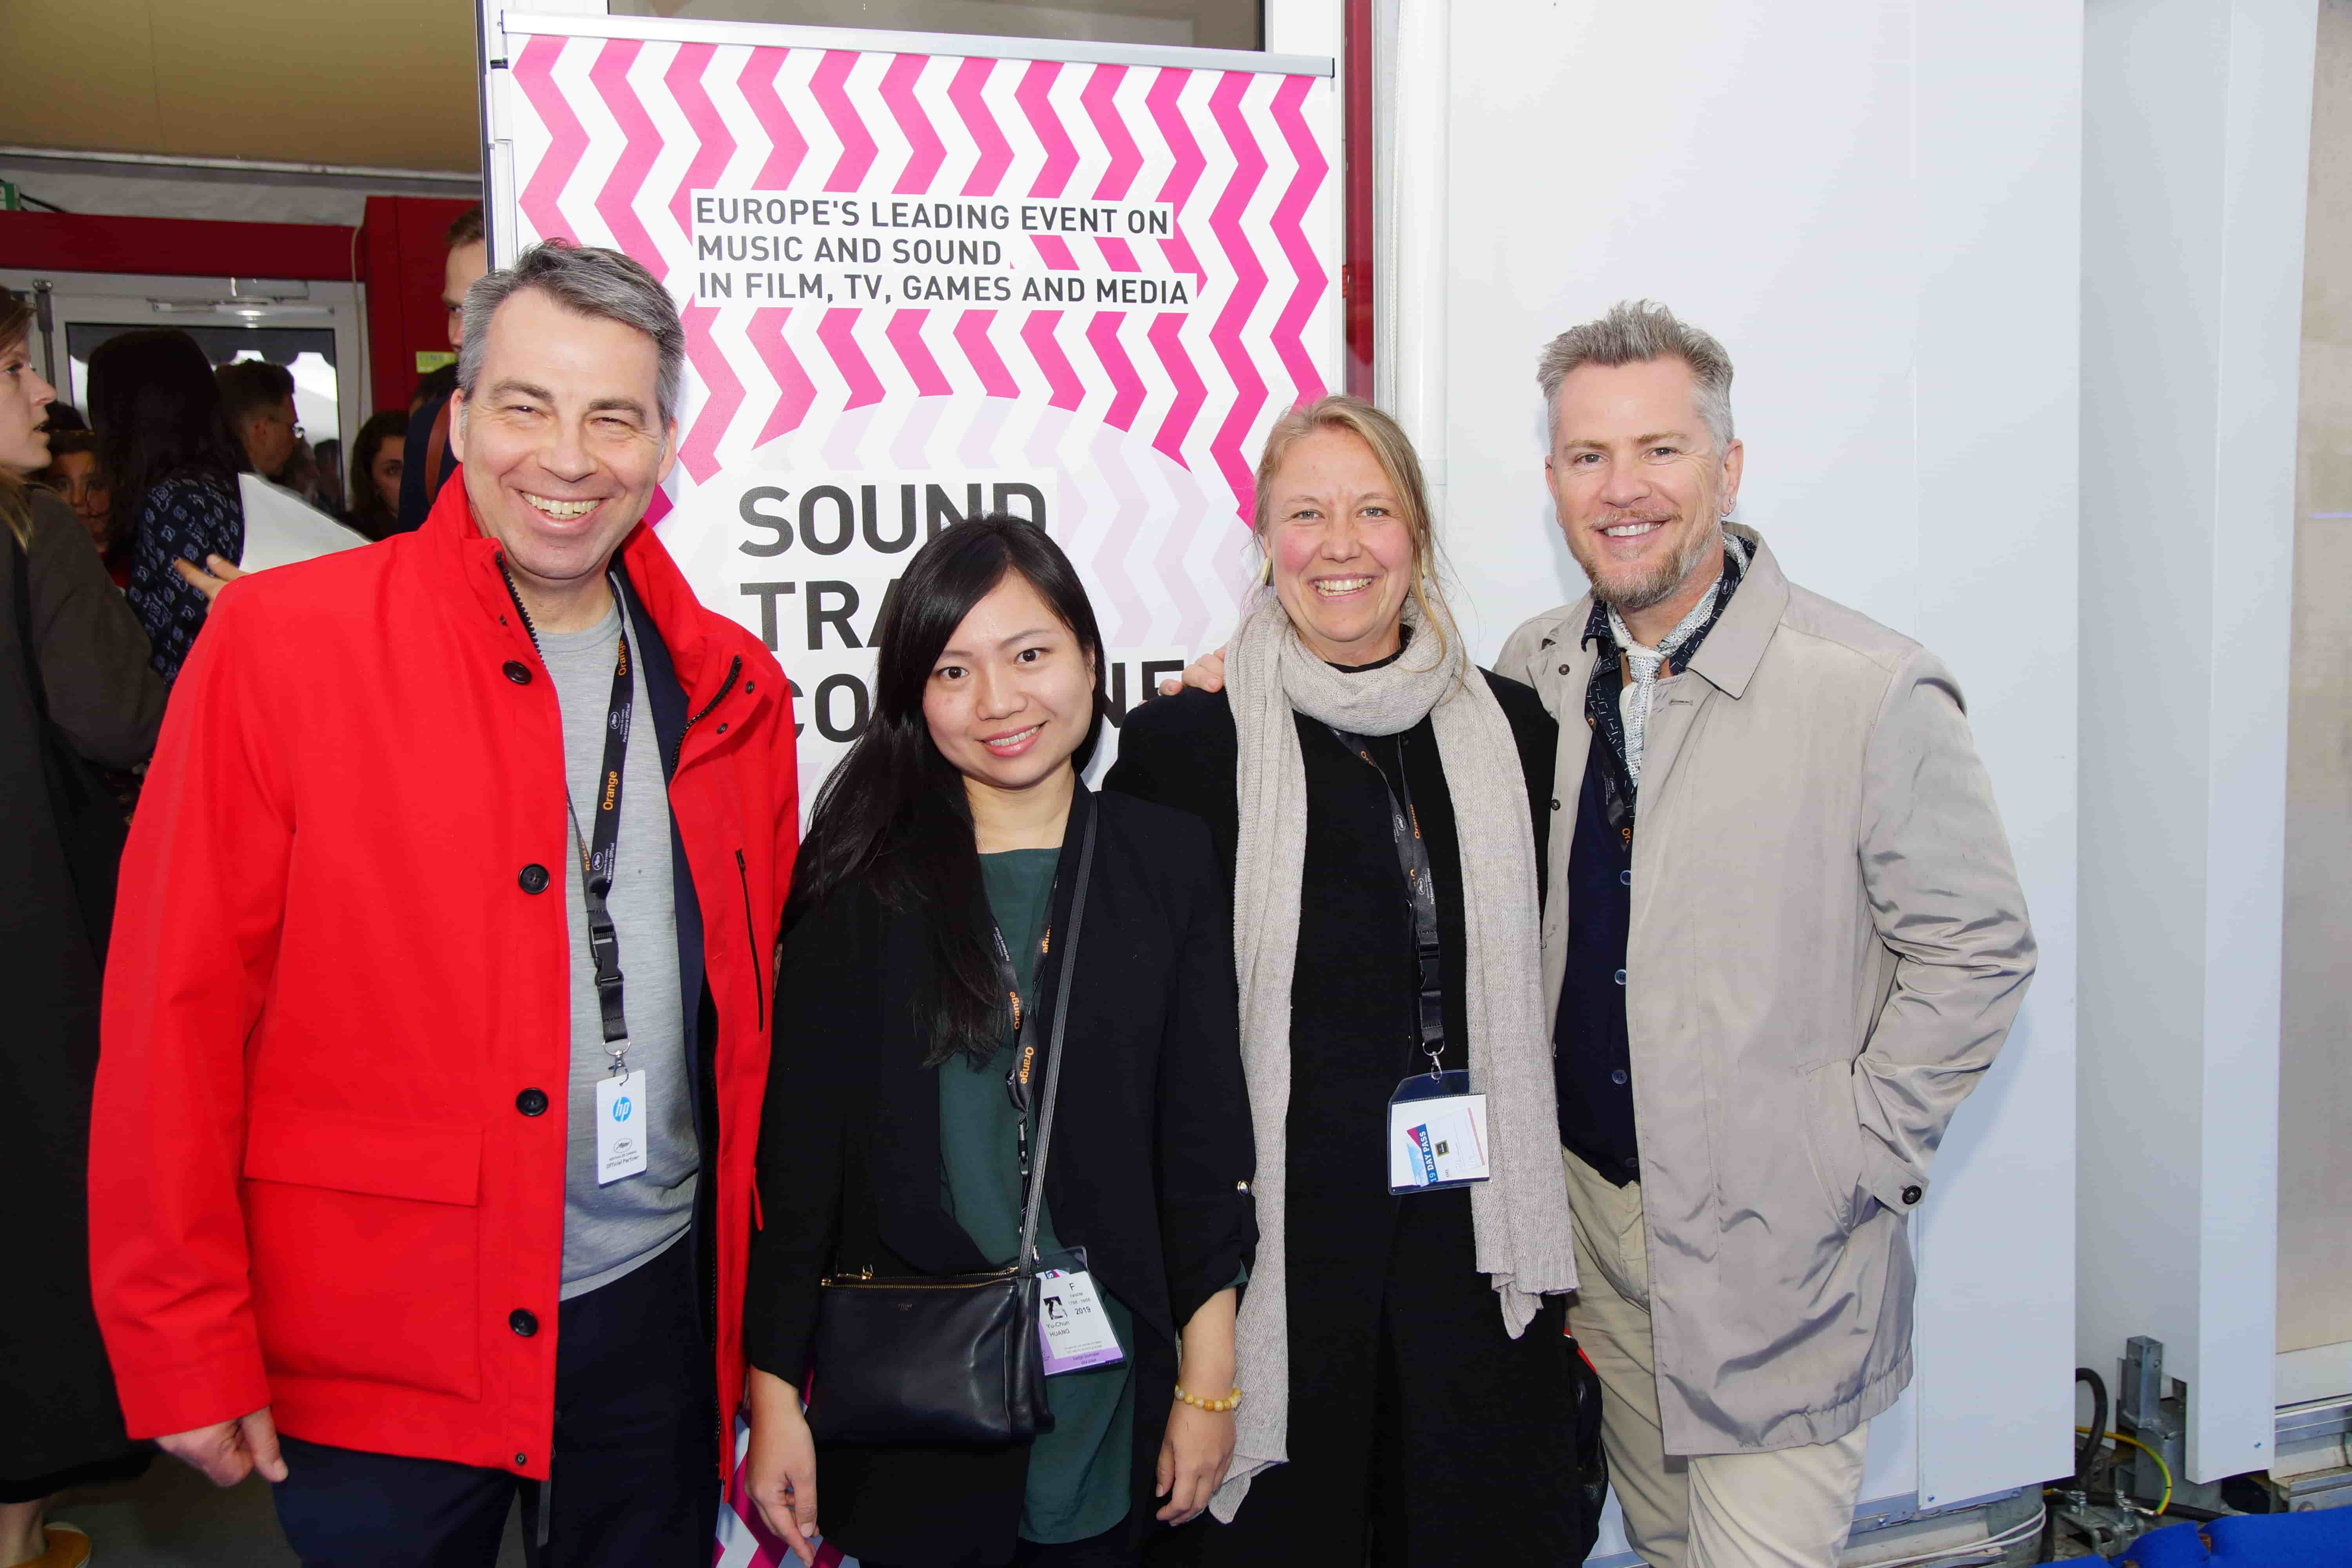 Michael Aust (Director STC), Yu-Chun Huang & Franziska Pohlmann (Track15 Female Composers Collective ), Thomas Mikusz (White Bear PR)